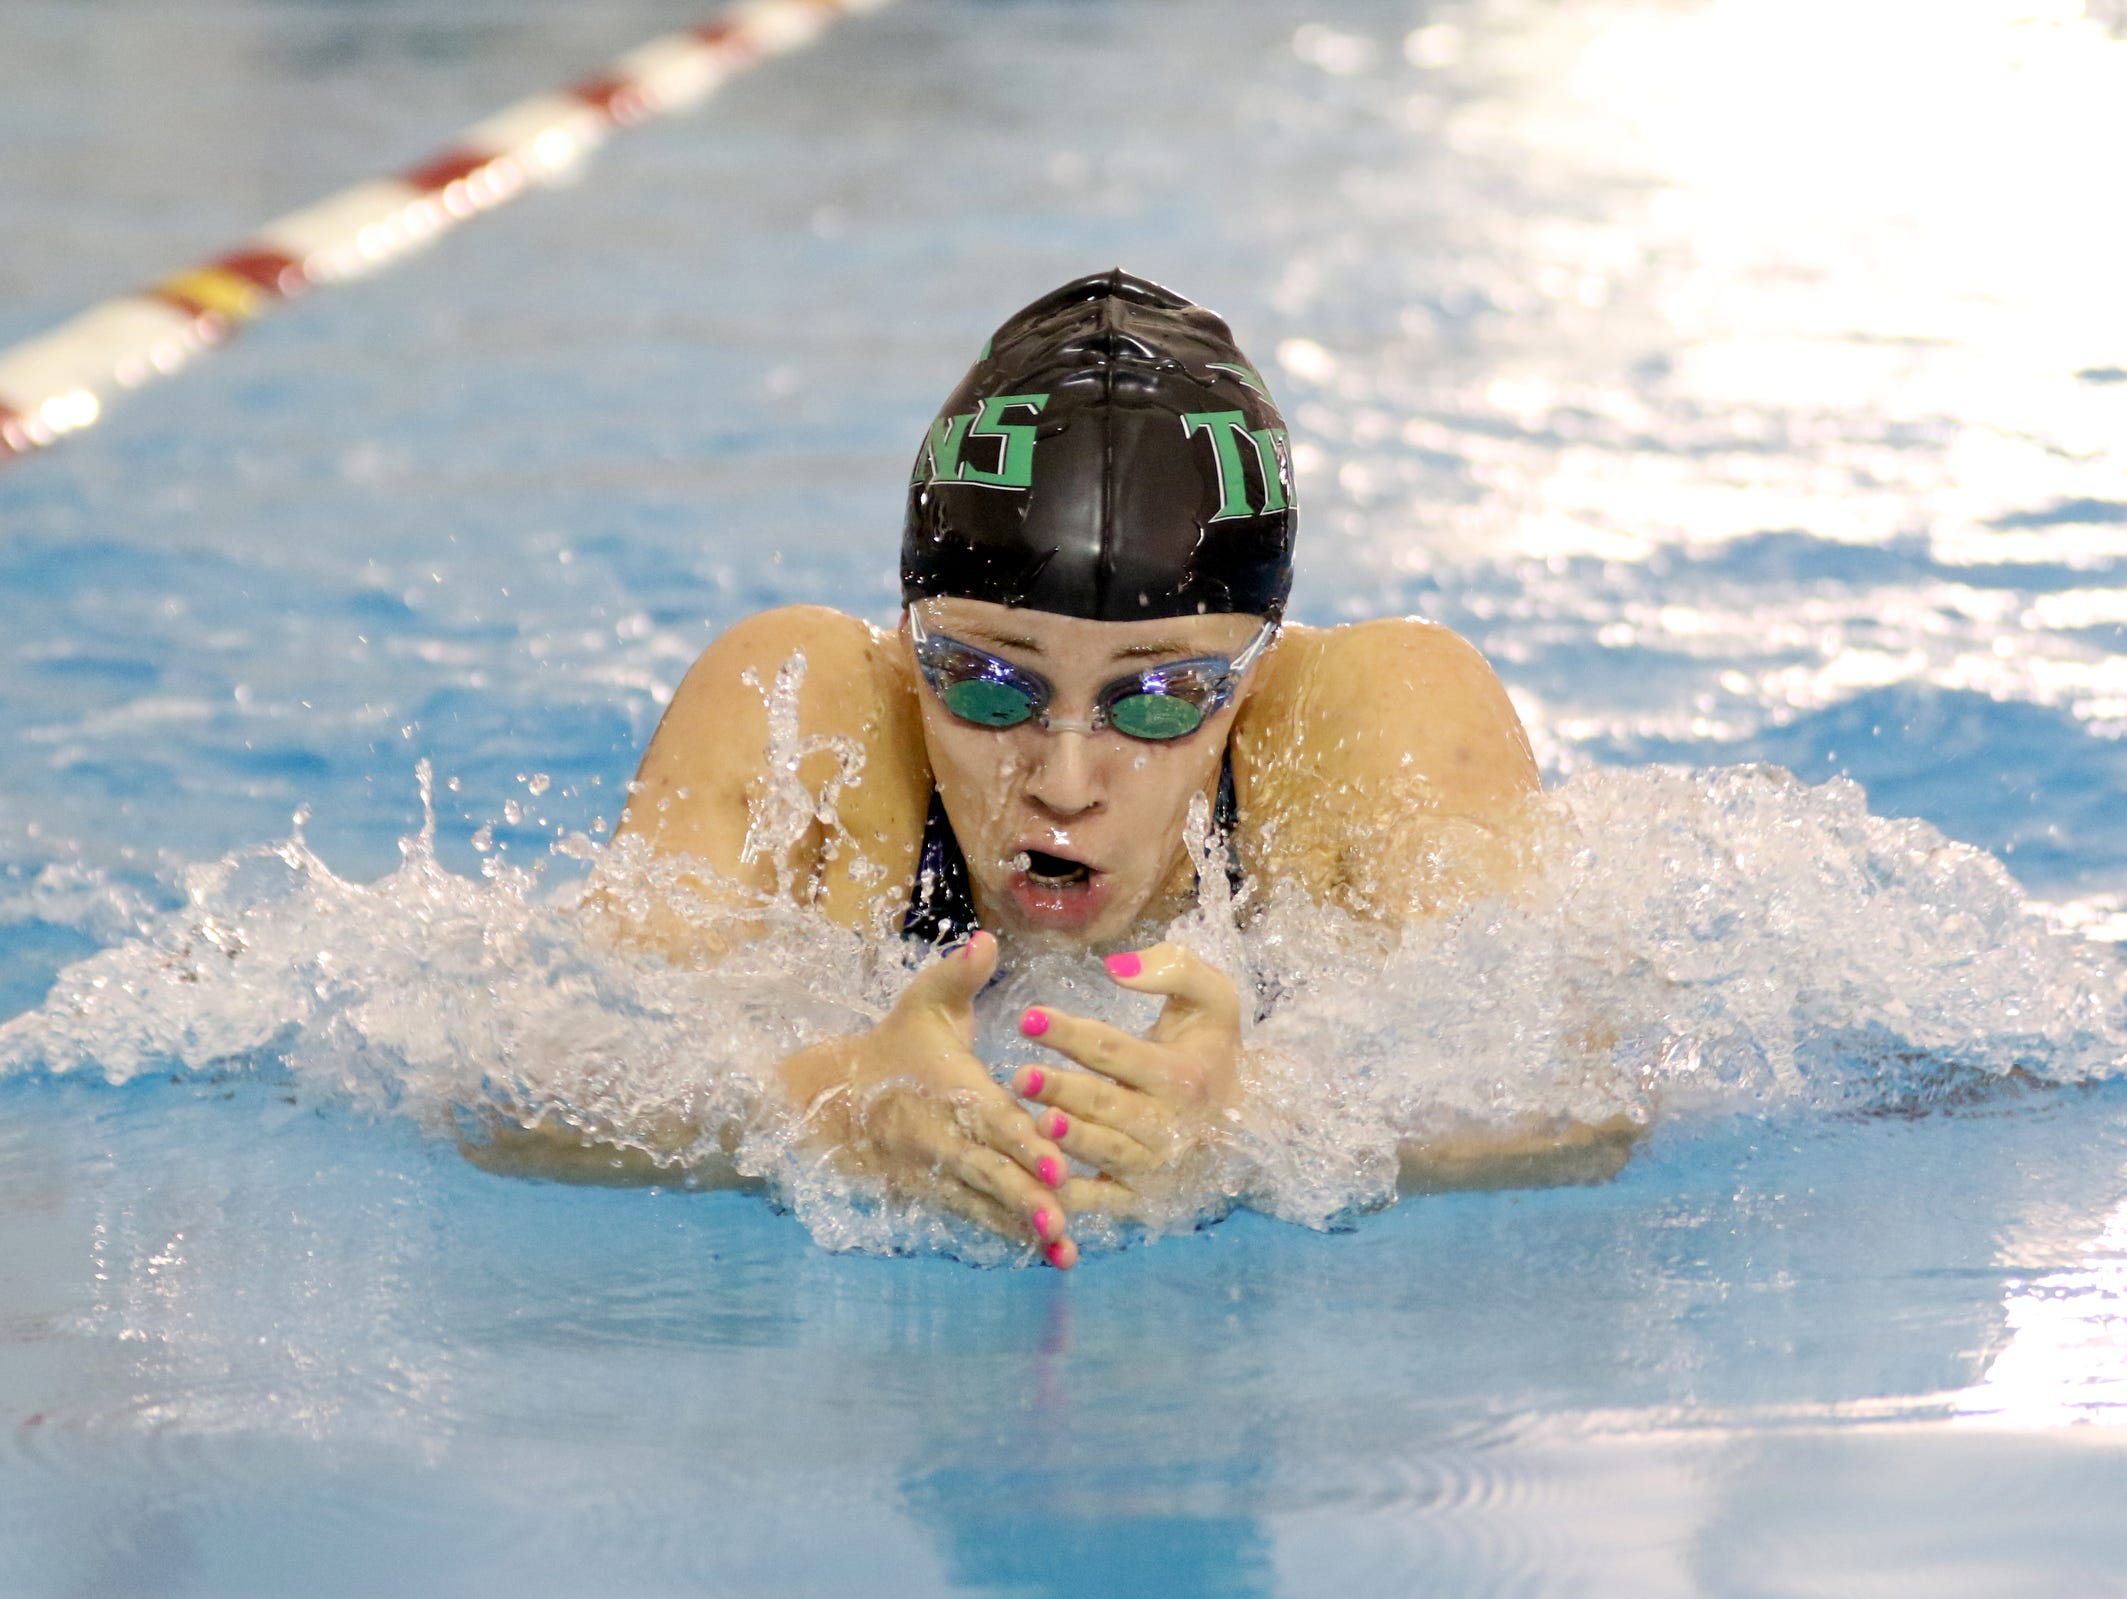 West Salem's Hannah Bodkin competes in the 100 yard breaststroke during the OSAA Class 6A Swimming State Championships at Mt. Hood Community College in Gresham on Saturday, Feb. 18, 2017.